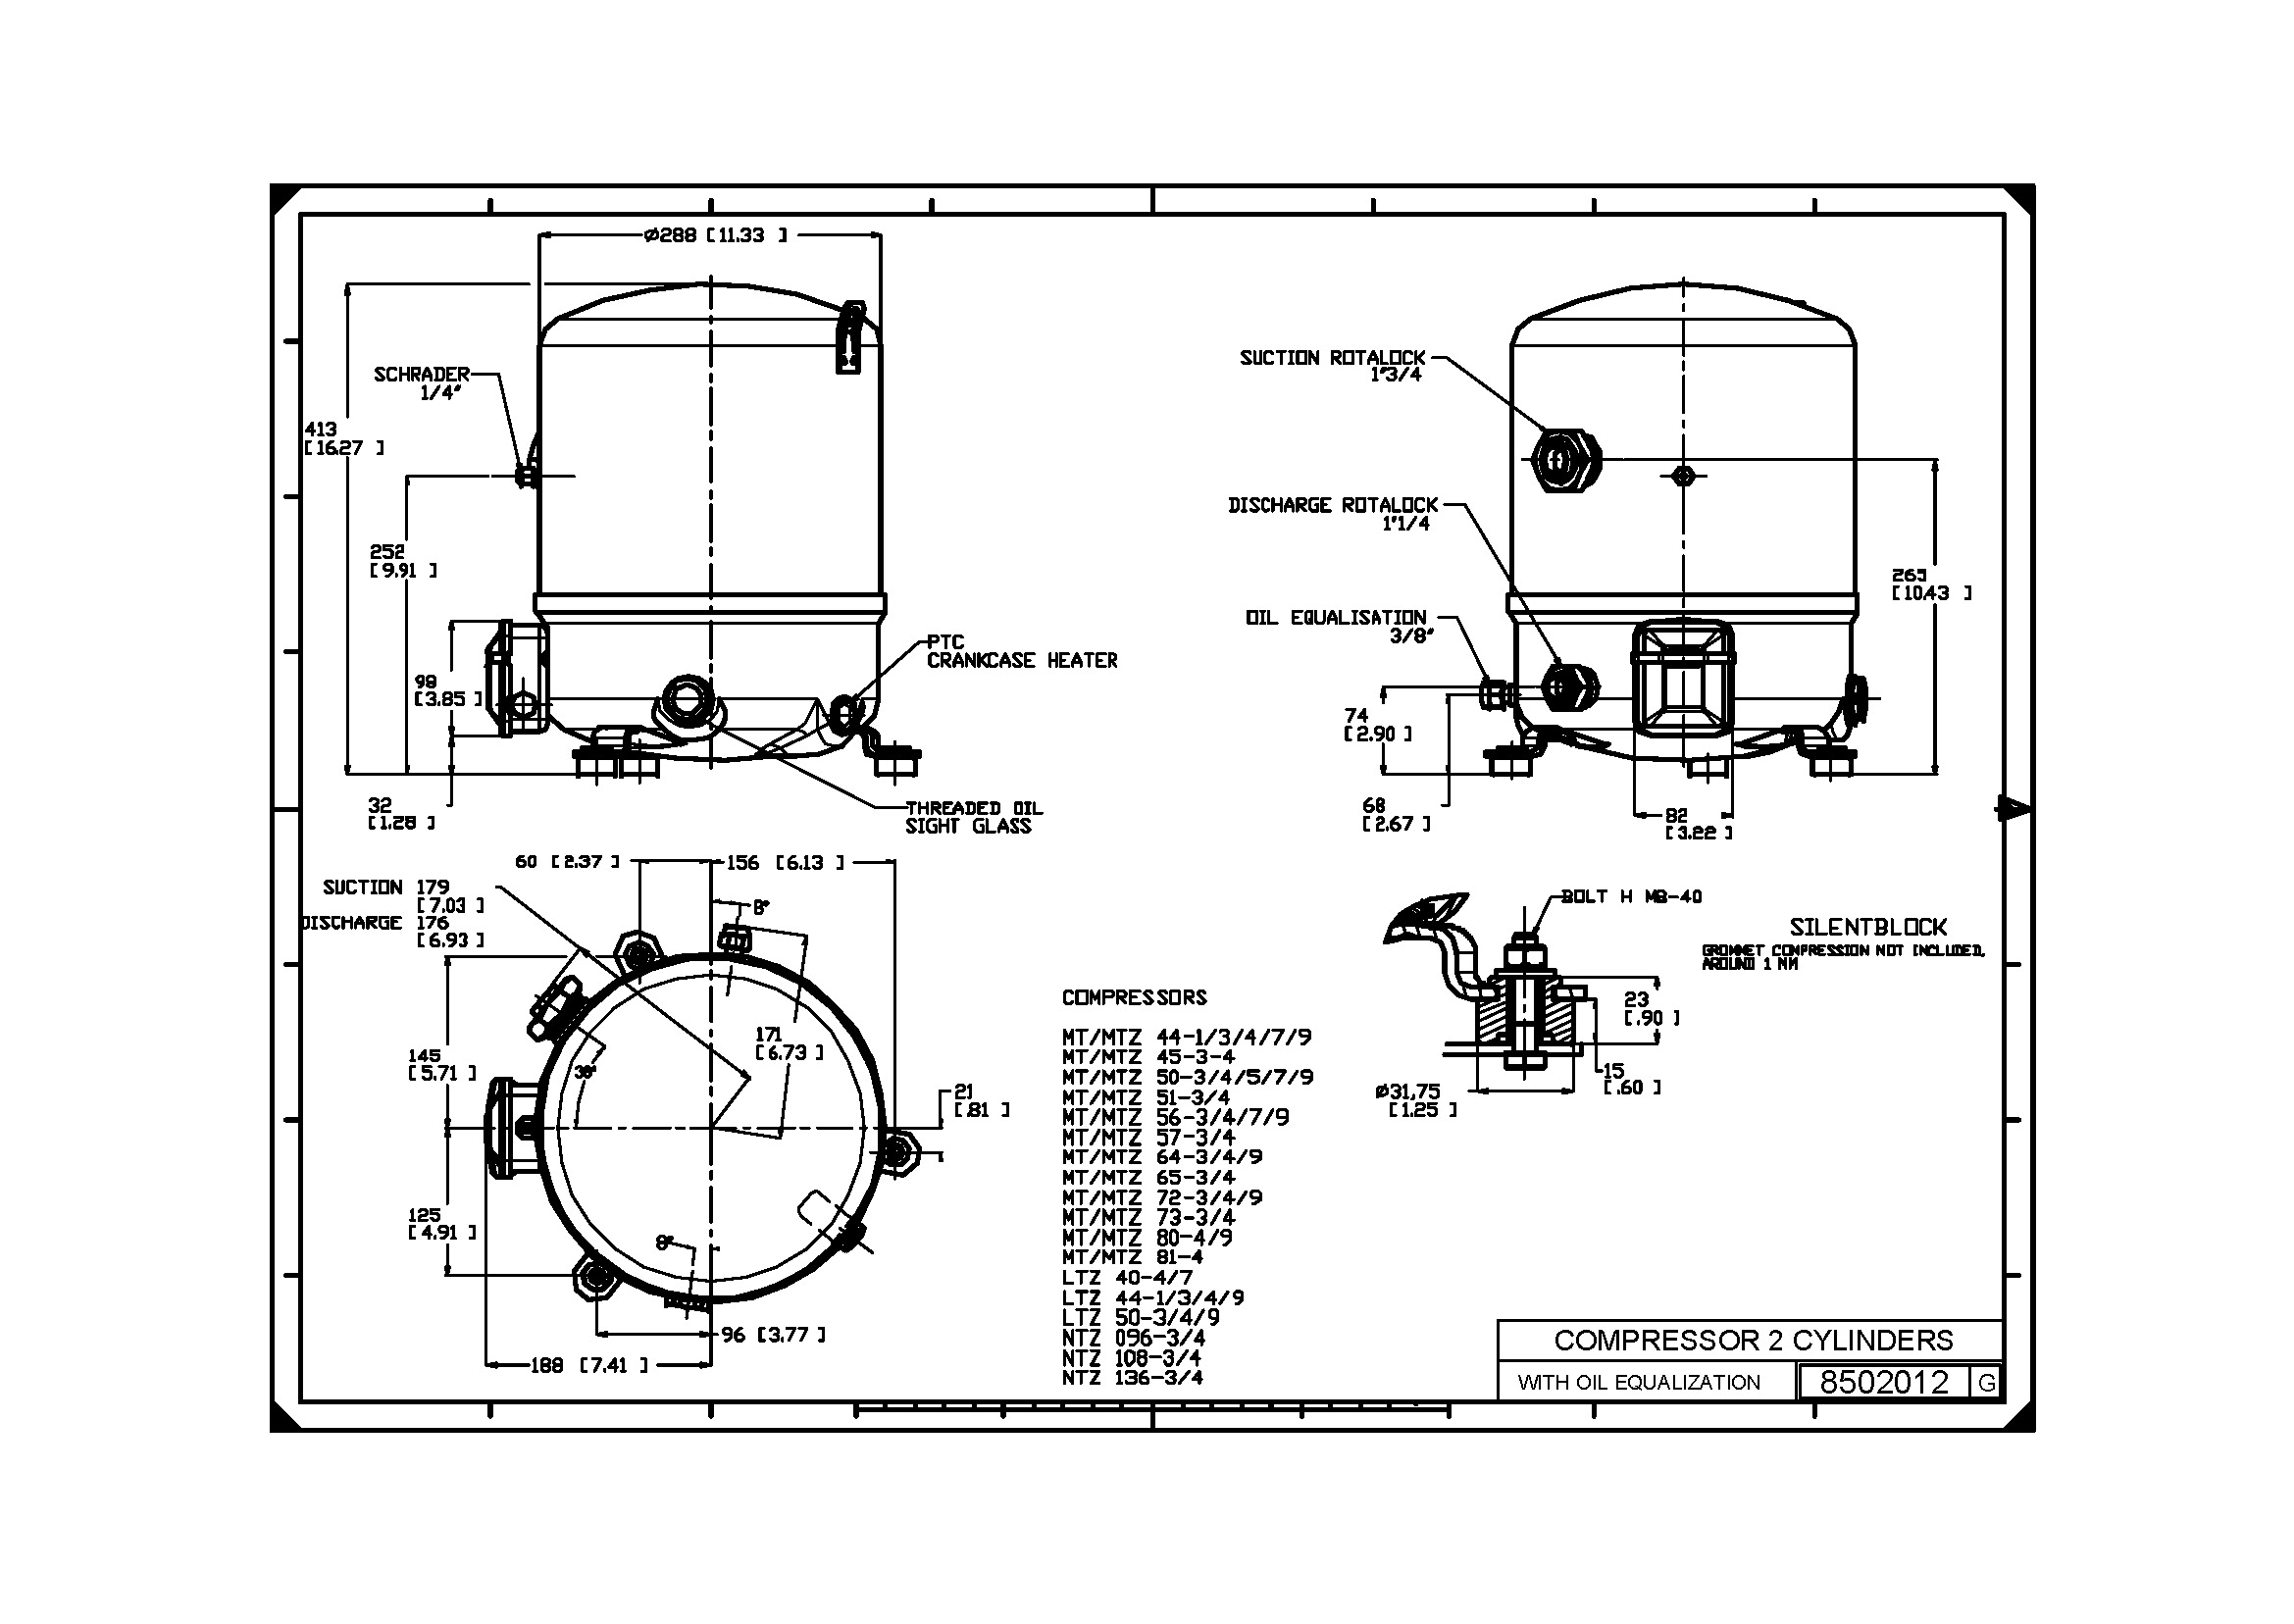 Maneurop Compressor Electrical Drawing | Wiring Schematic ... on commercial freezer compressor, stal compressor, sanyo compressor, lg compressor, bristol compressor, sulzer compressor, panasonic compressor, daikin compressor,